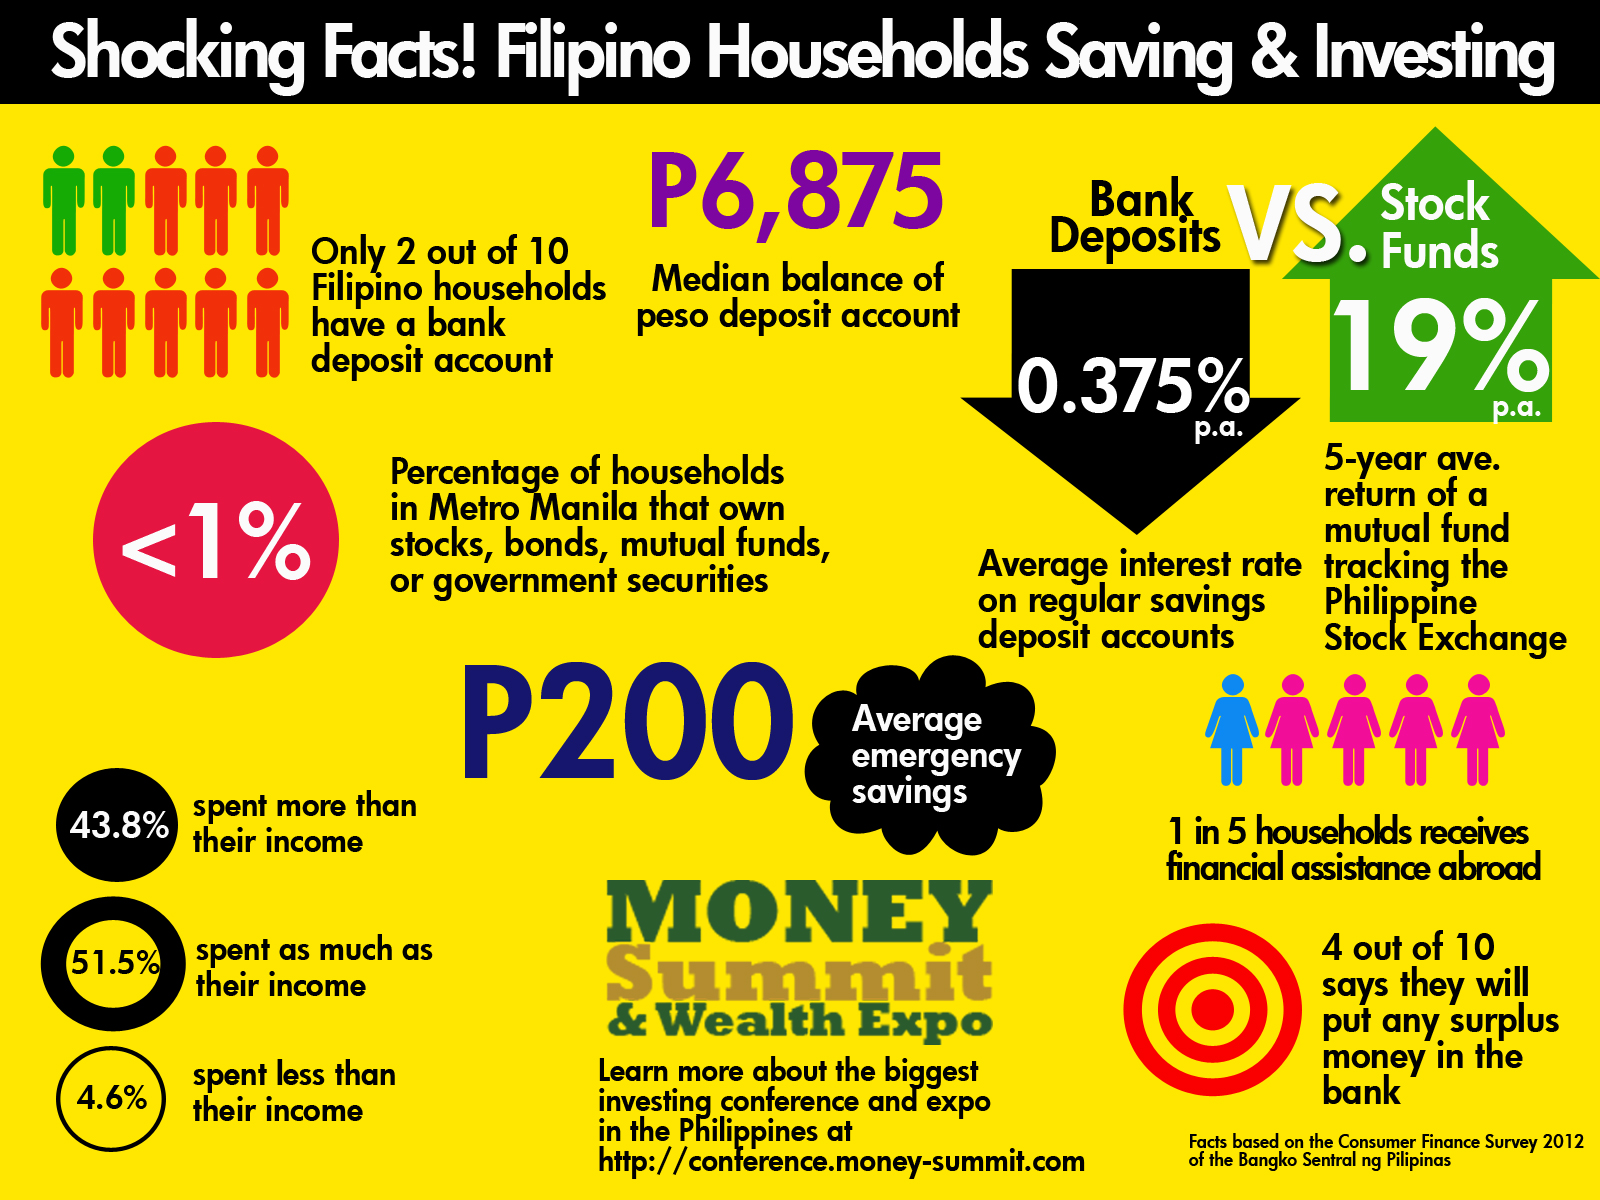 Less than 1% of Filipino households invests in securities ...